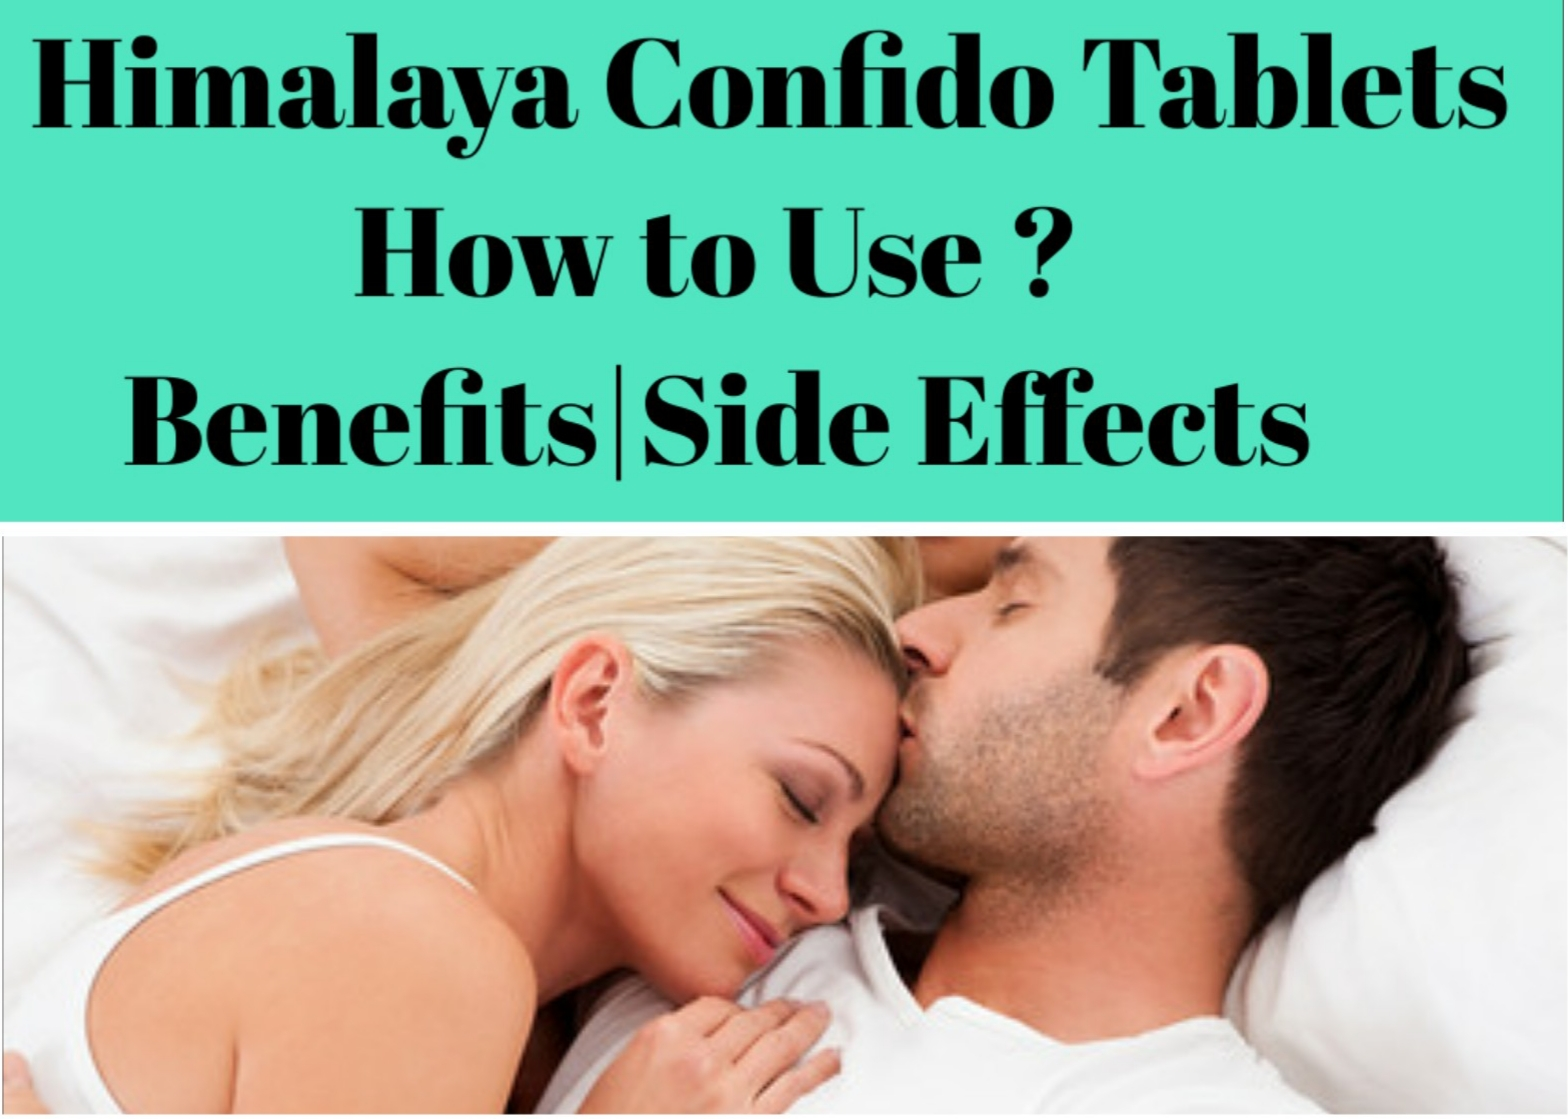 हिमालया CONFIDO के फ़ायदे और नुकसान|Benefits and Side Effects Of Himalaya Confido Tablets|How to use